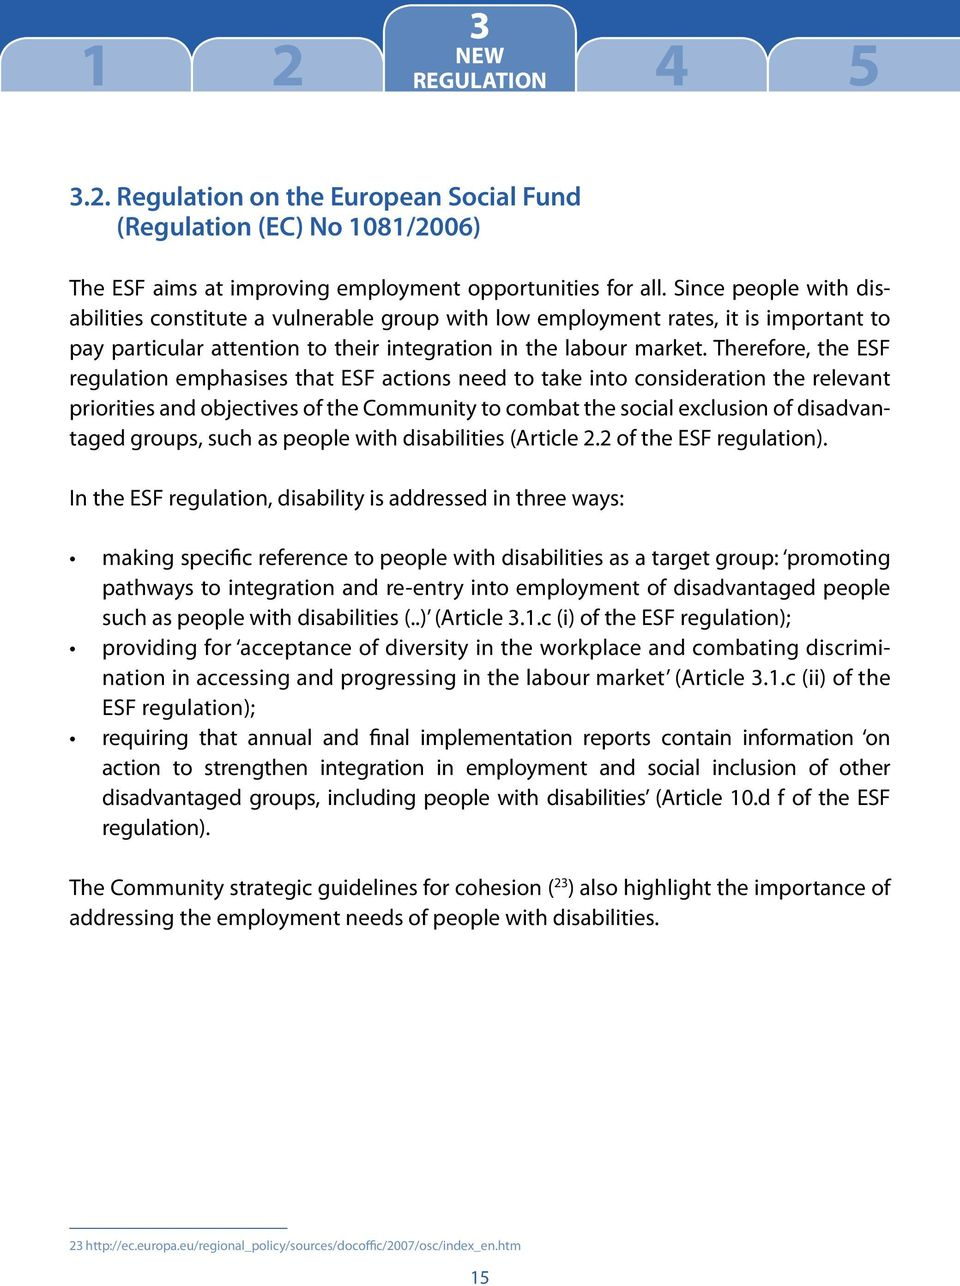 Therefore, the ESF regulation emphasises that ESF actions need to take into consideration the relevant priorities and objectives of the Community to combat the social exclusion of disadvantaged